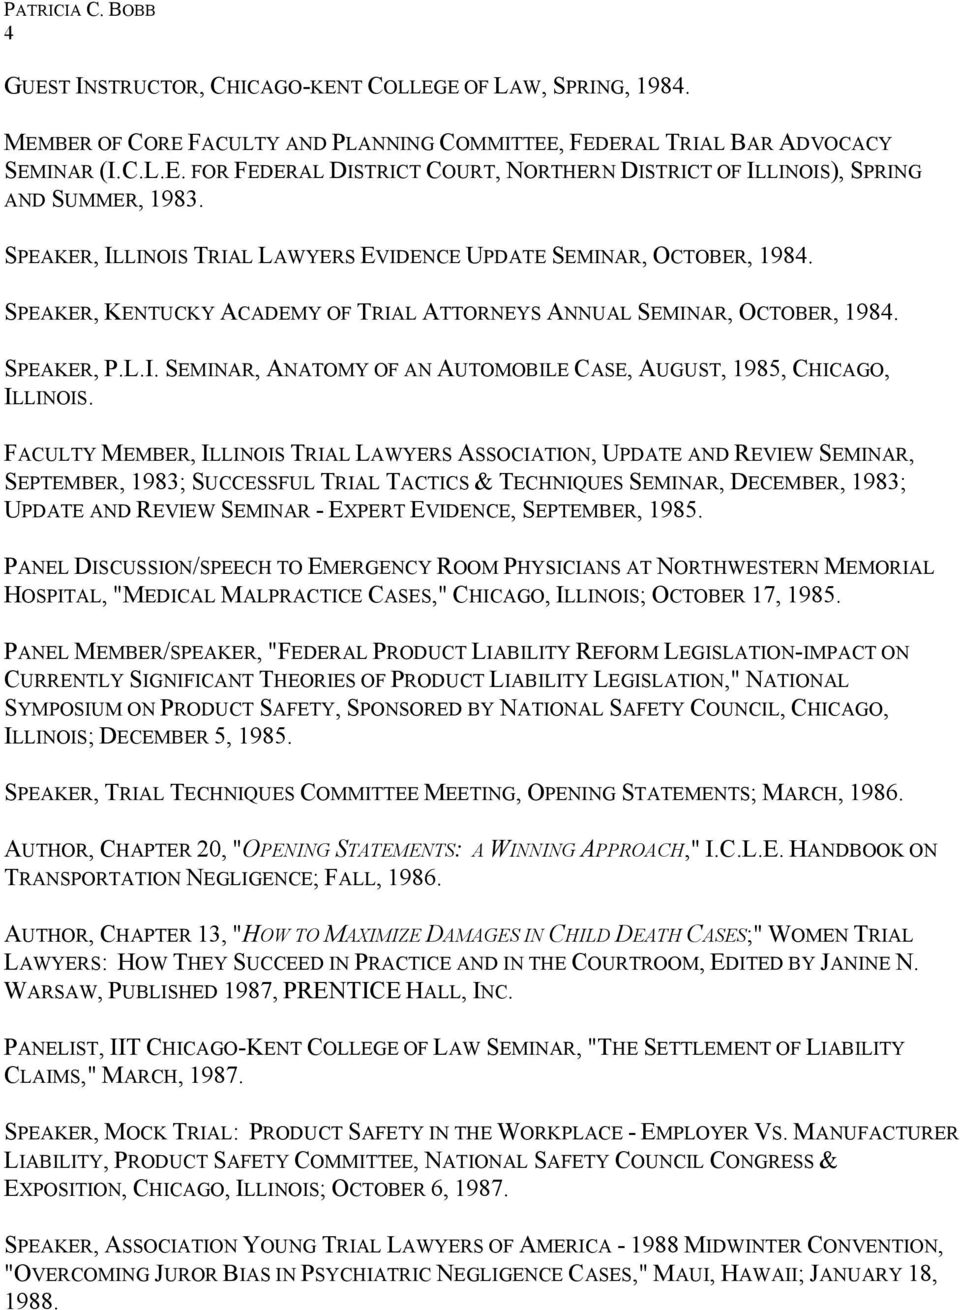 FACULTY MEMBER, ILLINOIS TRIAL LAWYERS ASSOCIATION, UPDATE AND REVIEW SEMINAR, SEPTEMBER, 1983; SUCCESSFUL TRIAL TACTICS & TECHNIQUES SEMINAR, DECEMBER, 1983; UPDATE AND REVIEW SEMINAR - EXPERT